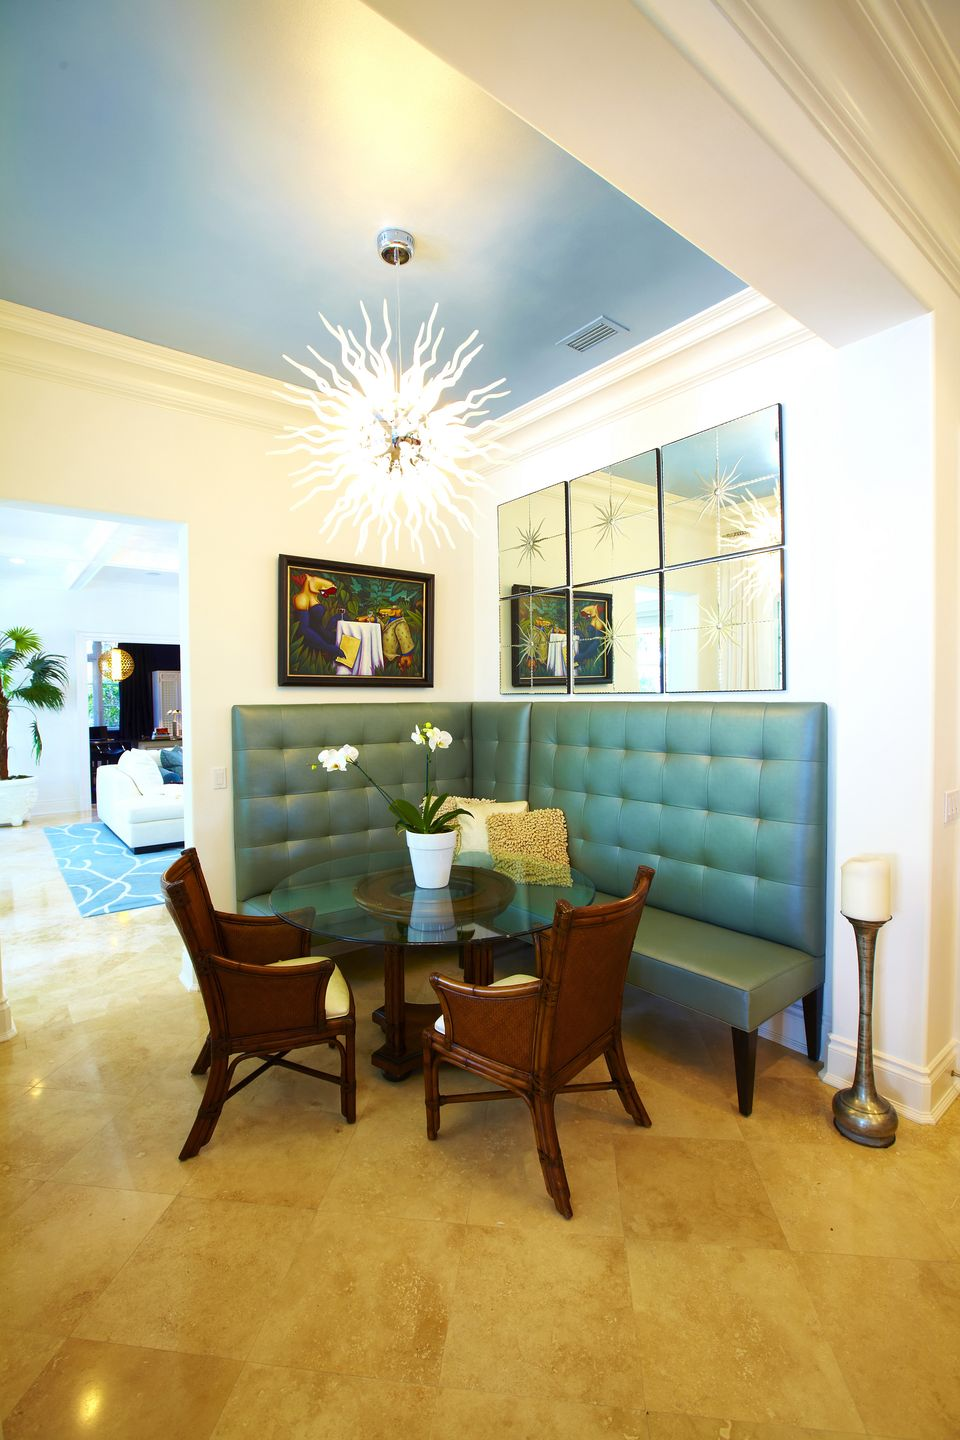 84 key west interior design the furniture 59 best On key west interior design